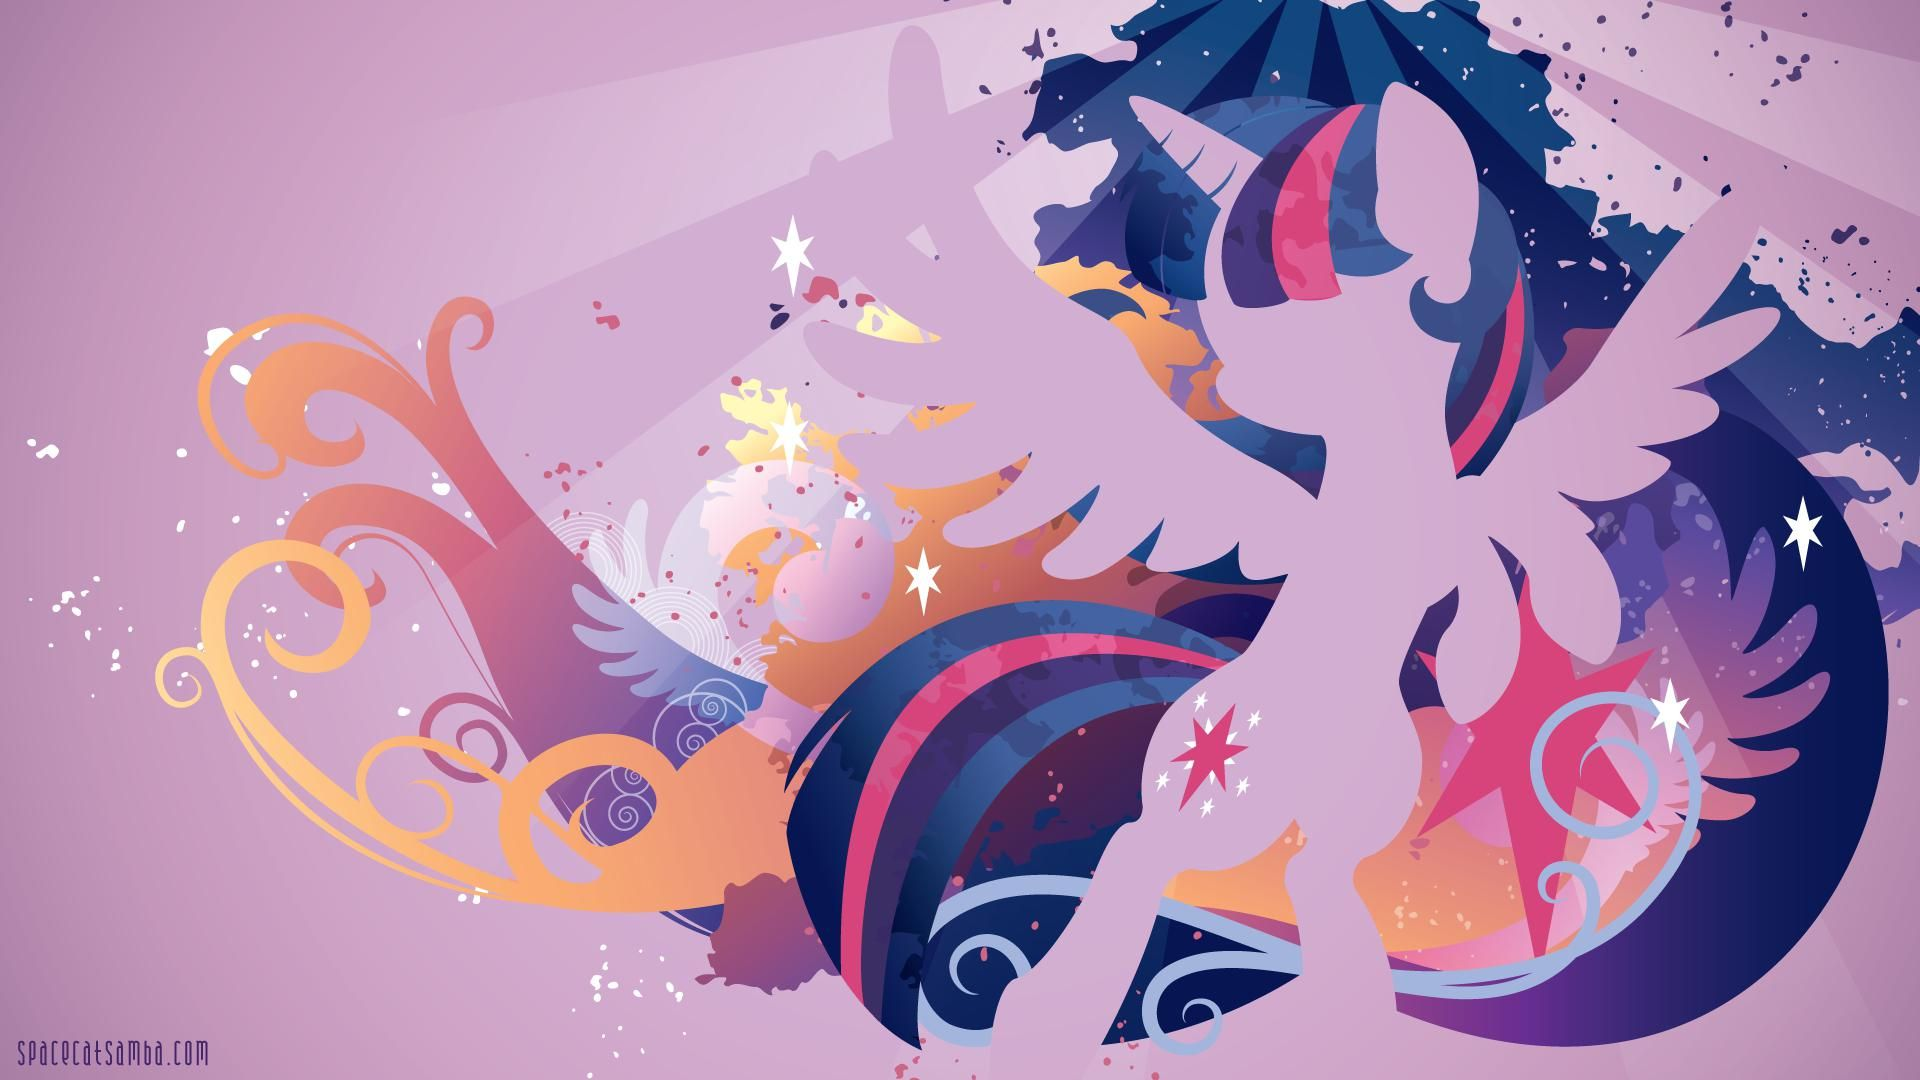 mlp background pony wallpapers - photo #36